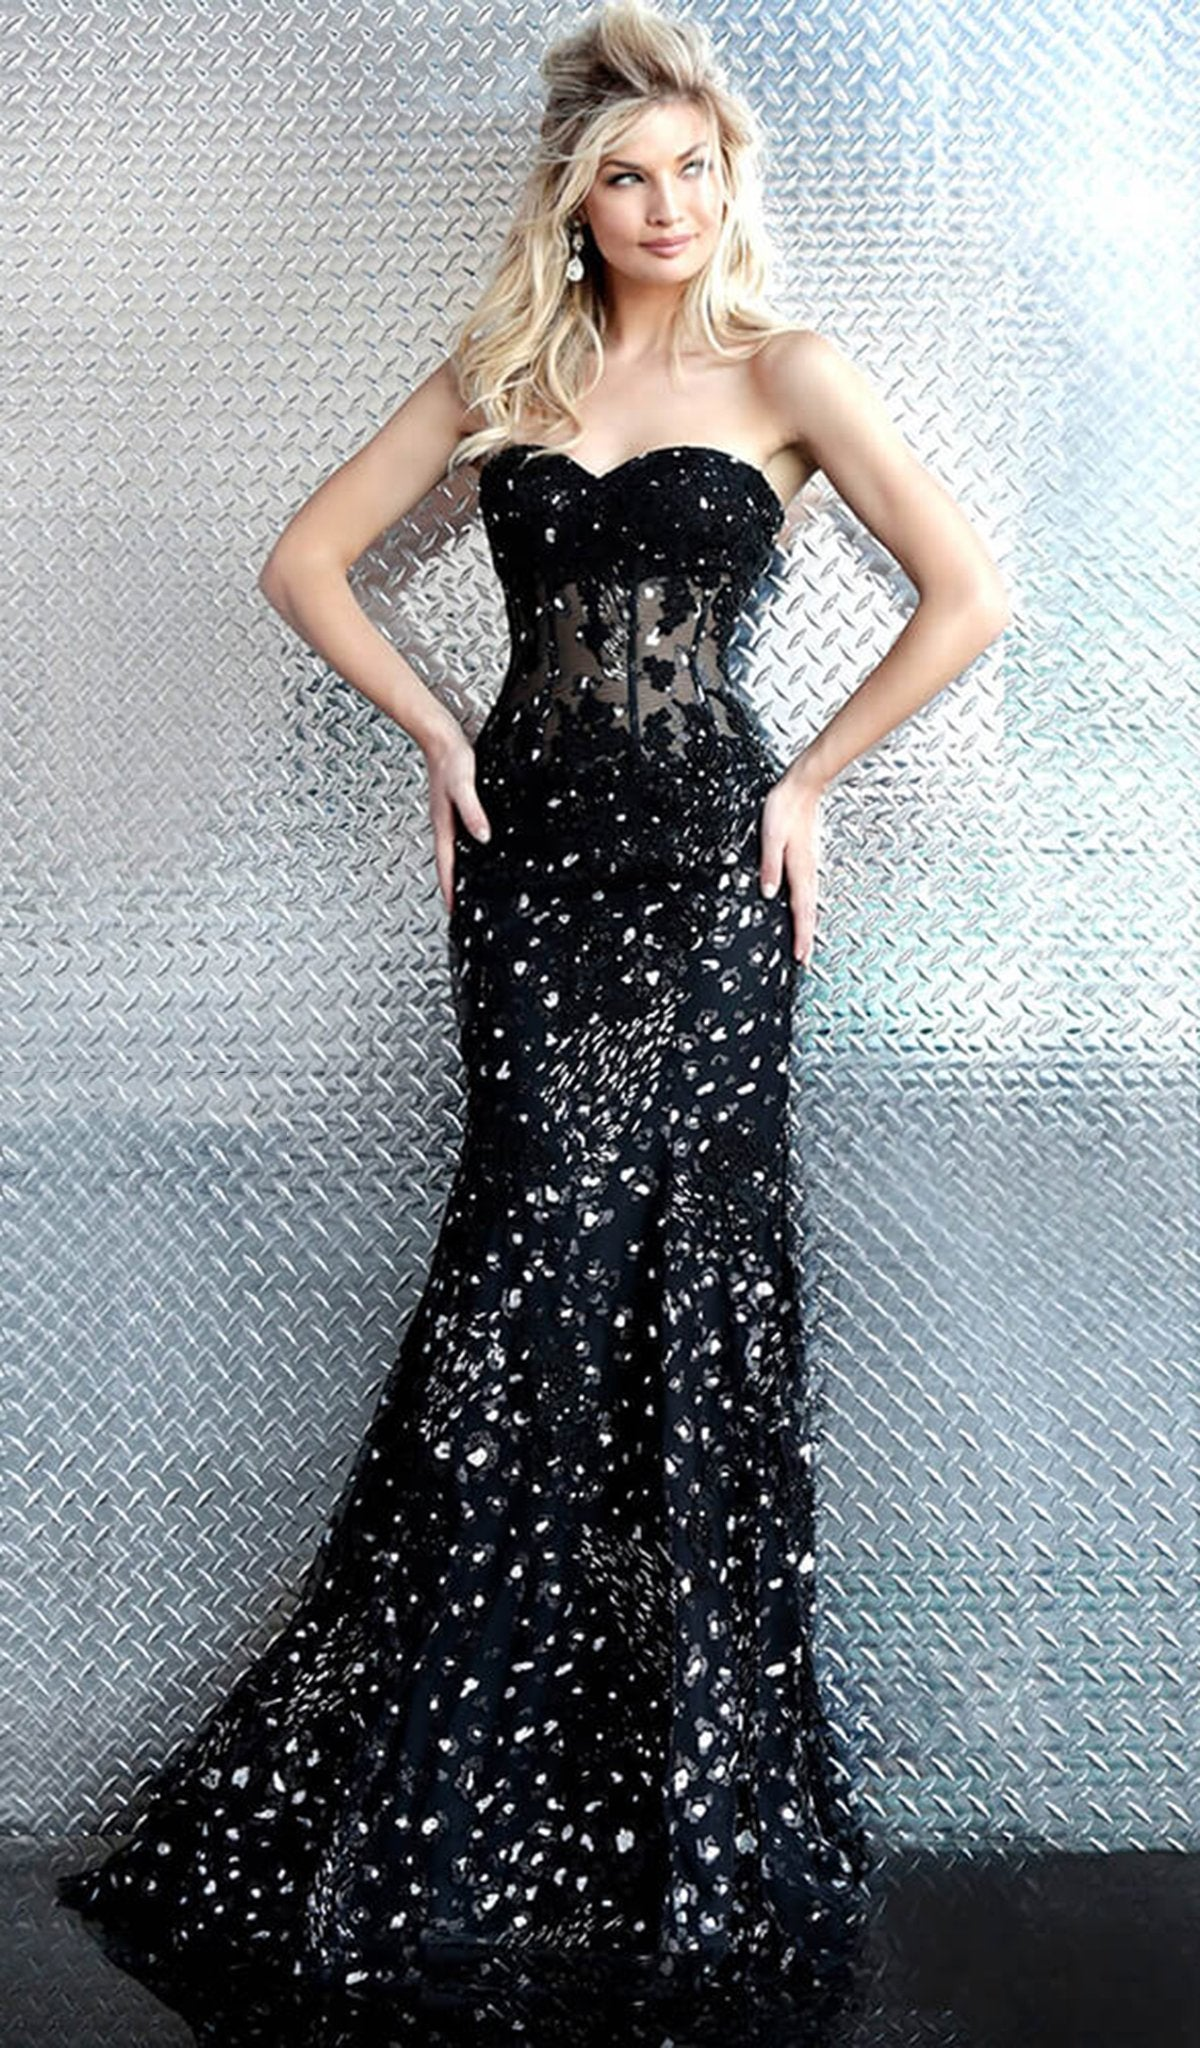 Jovani - 62746 Strapless Embellished Sweetheart Mermaid Dress in Black and Silver